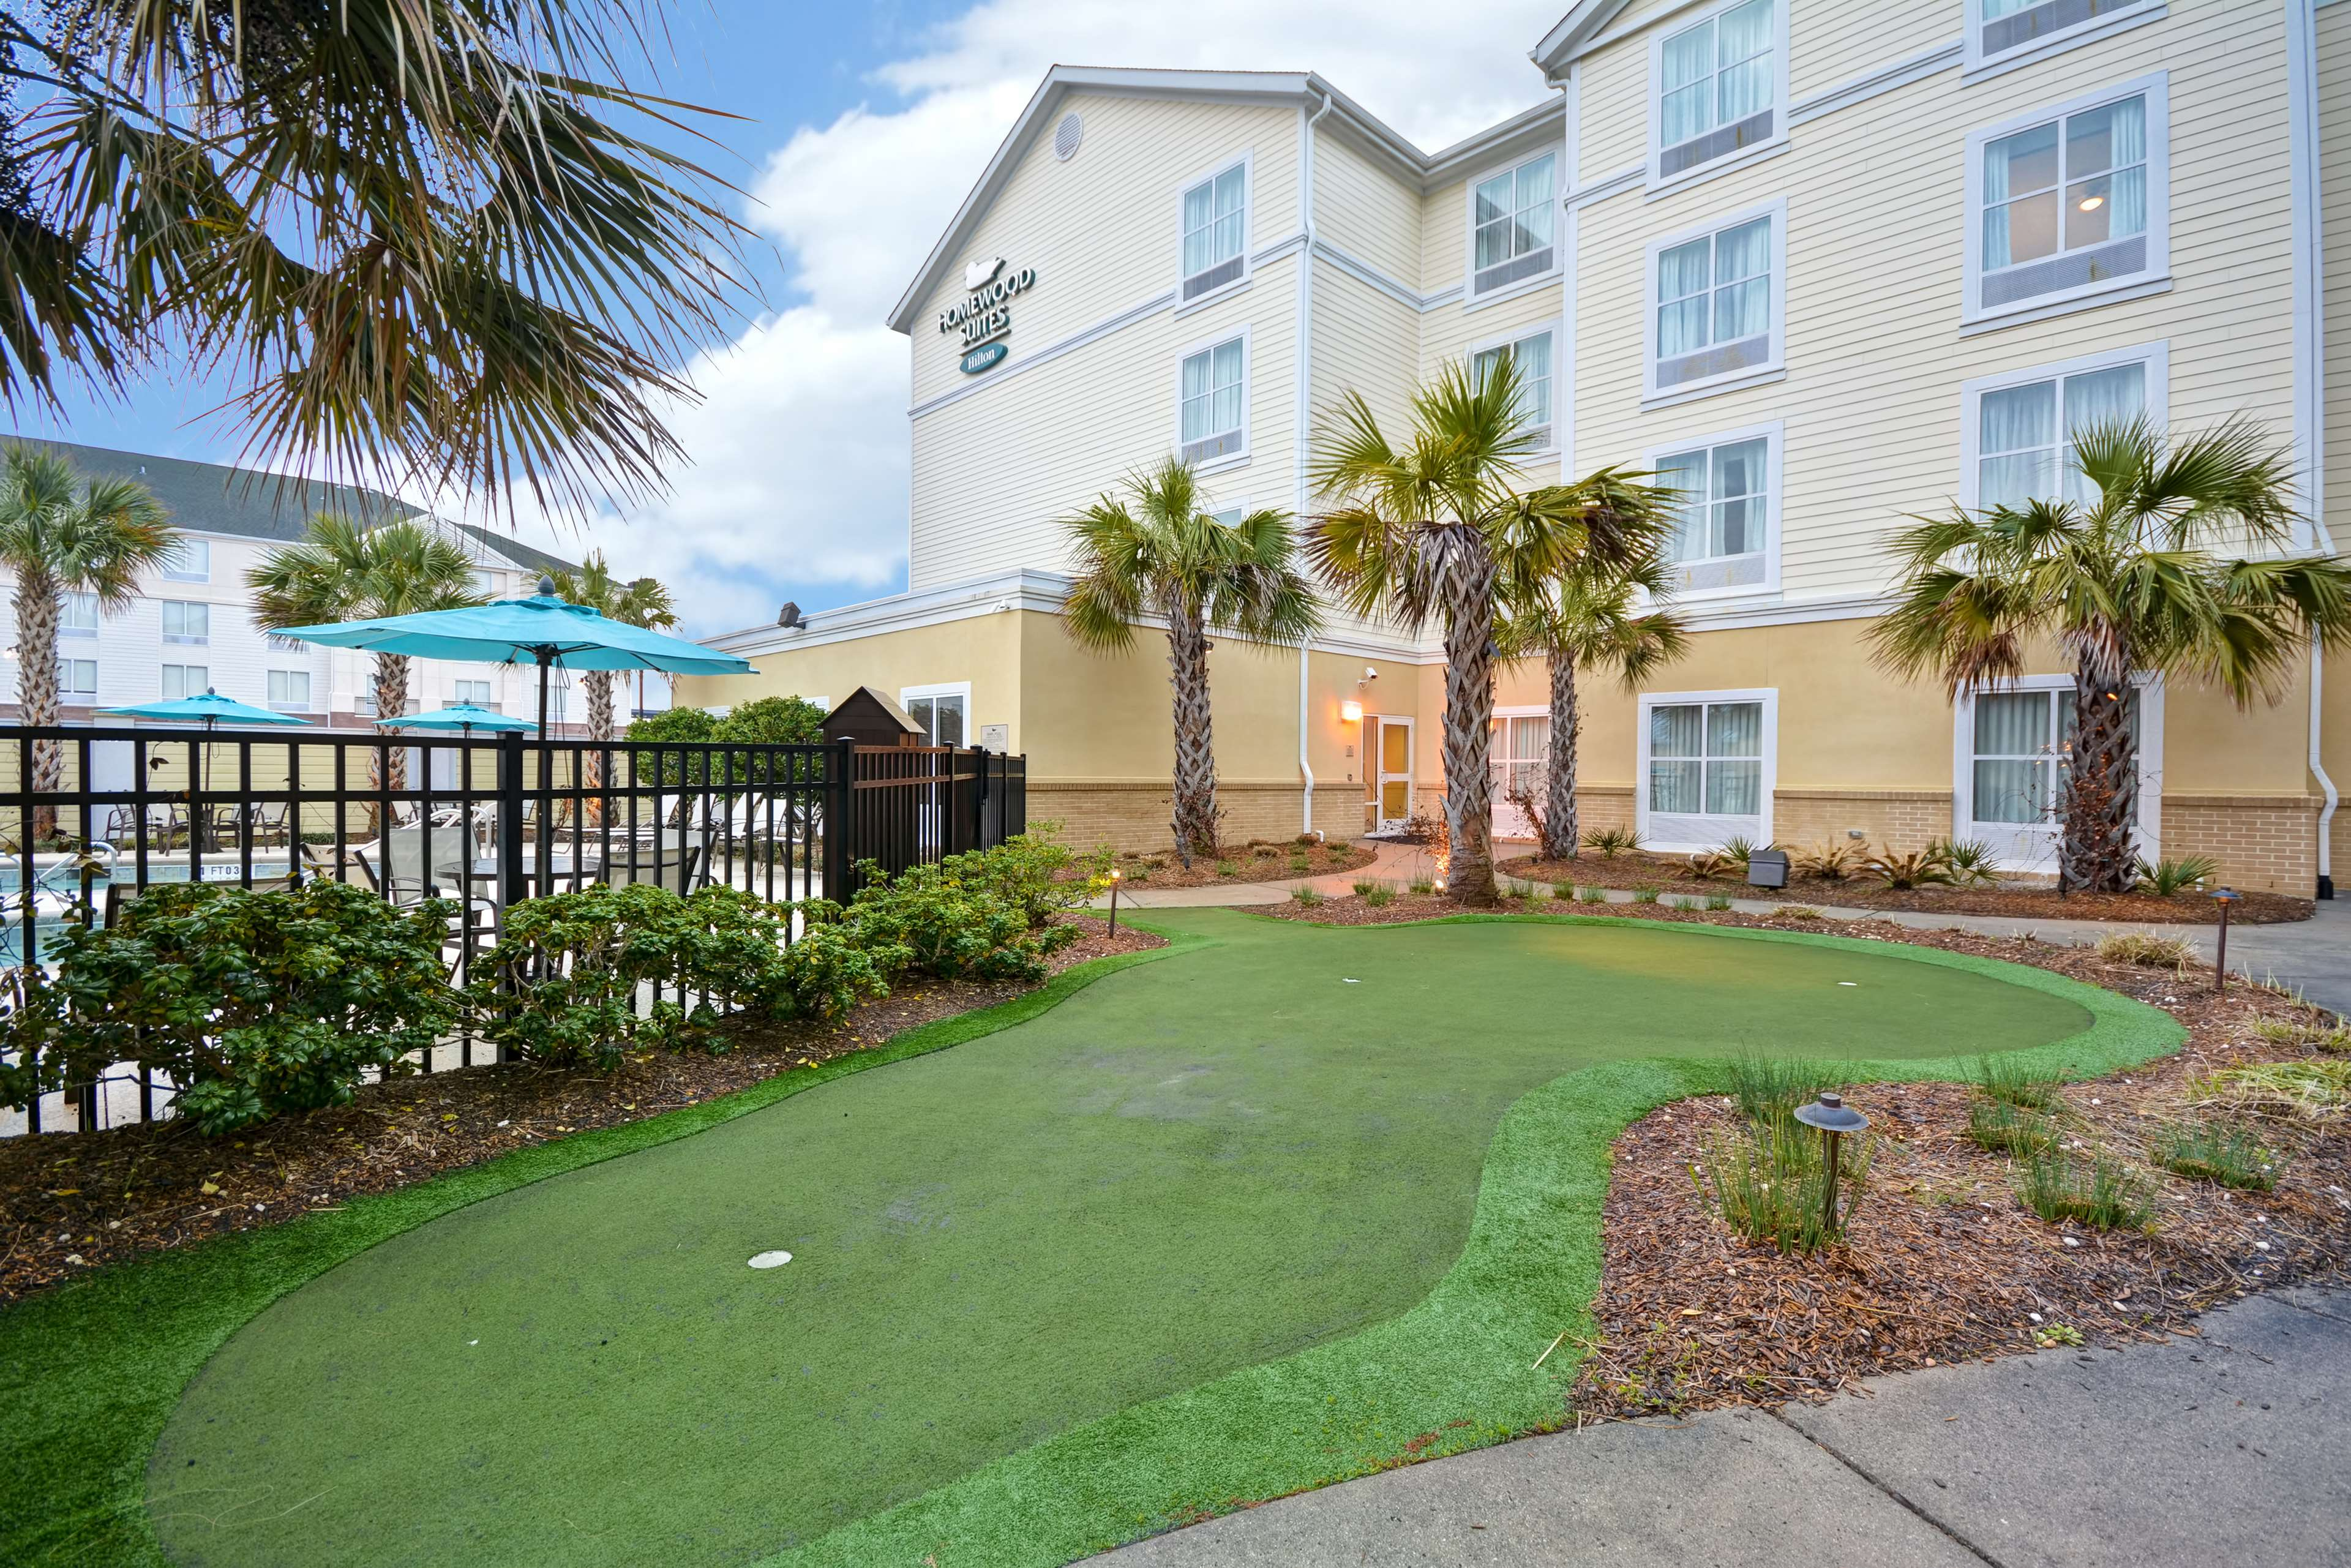 Homewood Suites by Hilton Wilmington/Mayfaire, NC image 36